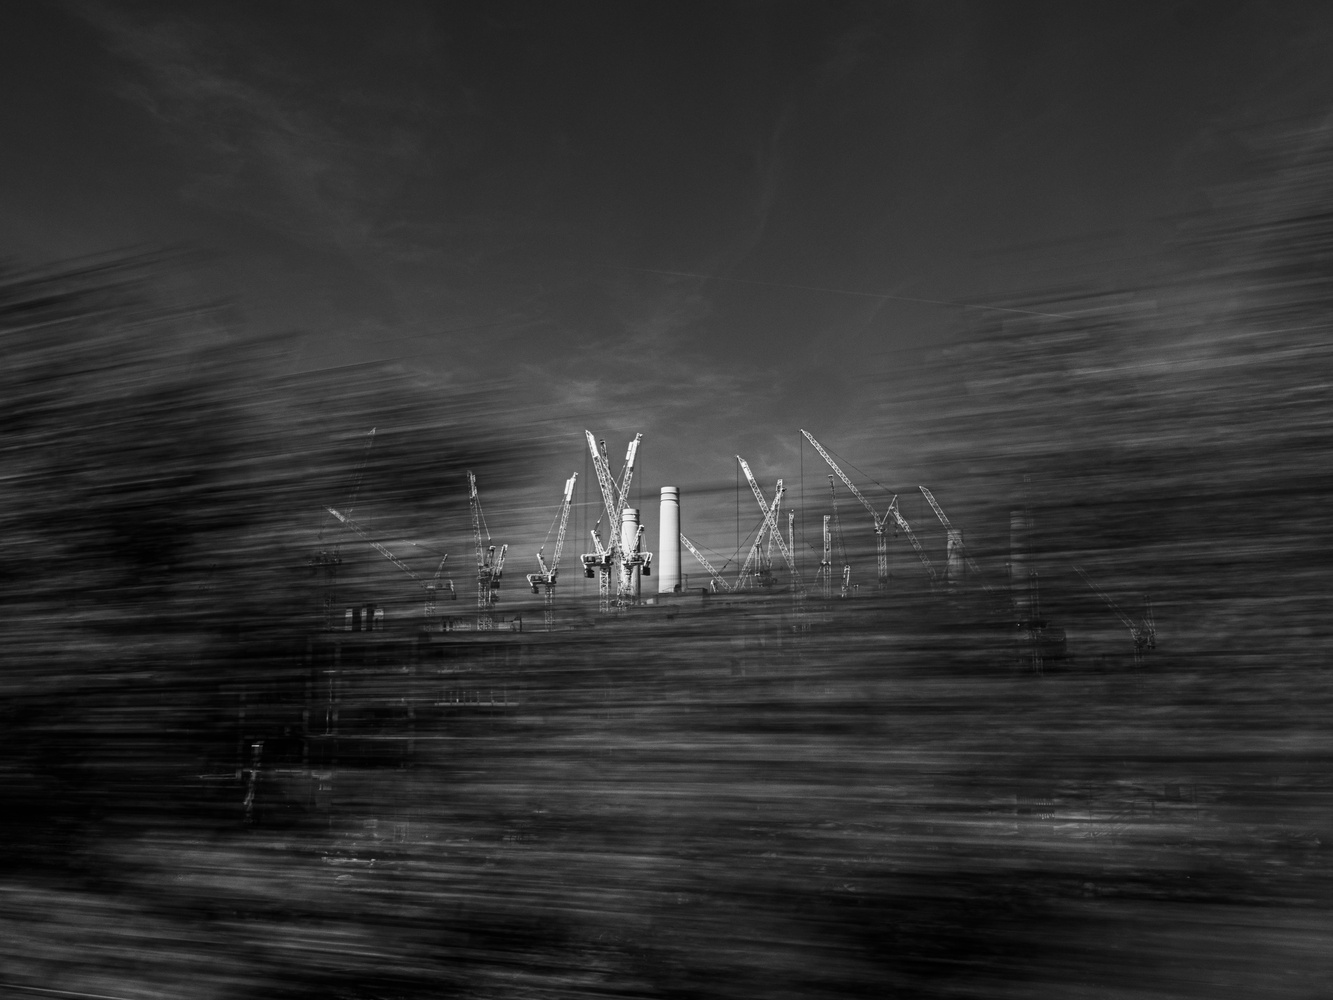 Battersea - View from the train by tomas doe